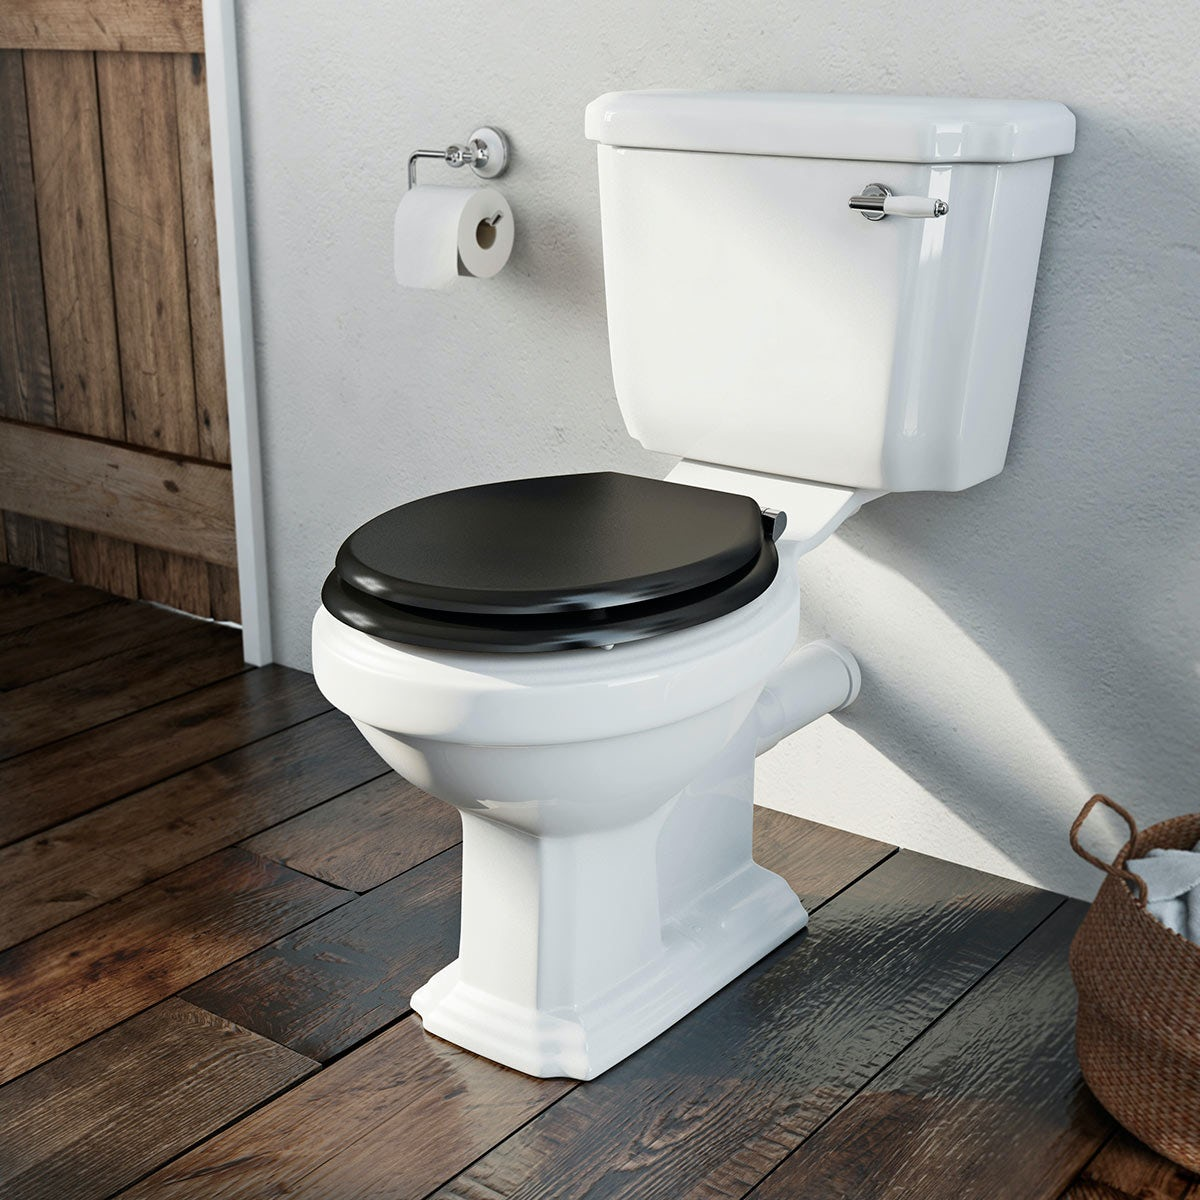 Dulwich close coupled toilet with black wooden toilet seatDulwich close coupled toilet with black wooden toilet seat  . Wooden Black Toilet Seat. Home Design Ideas